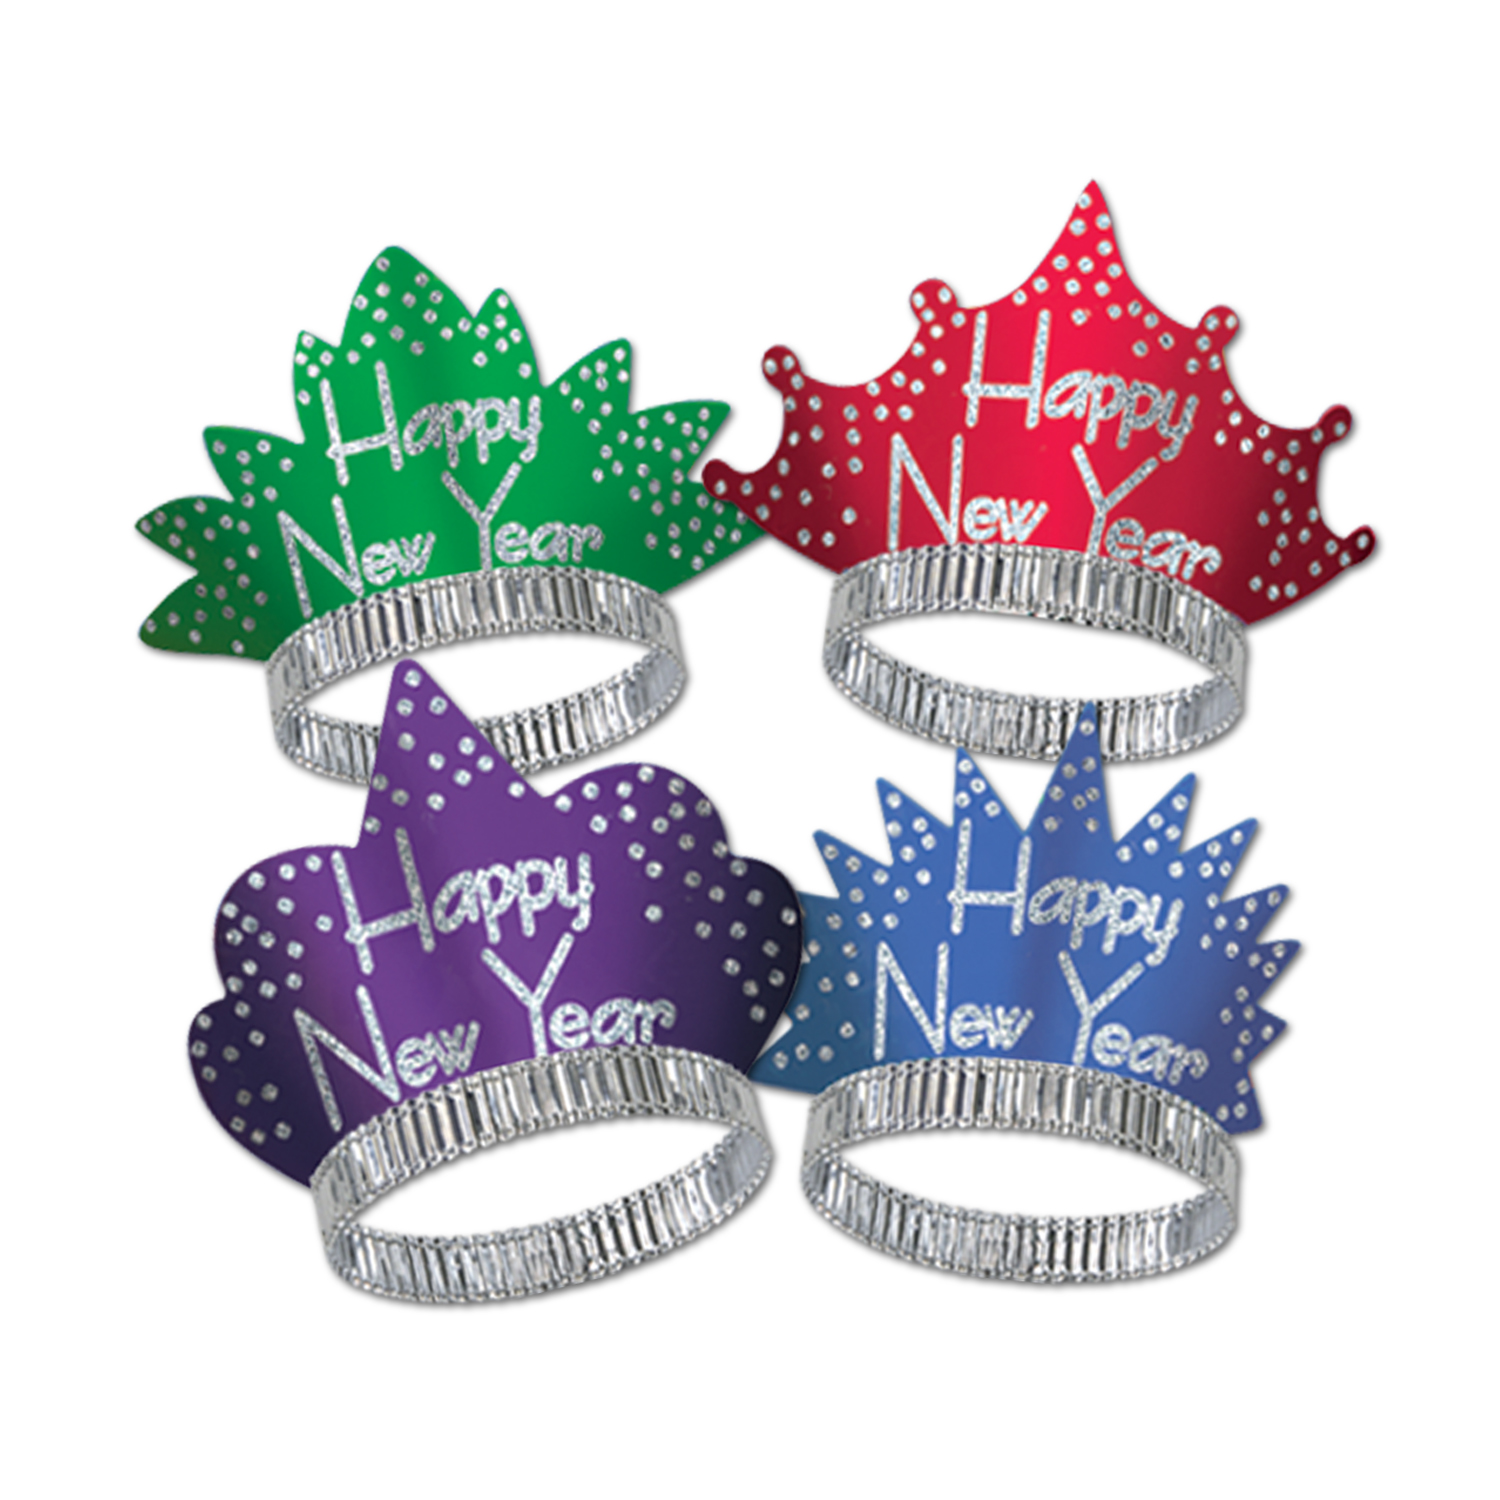 Headliner Tiaras asstd colors